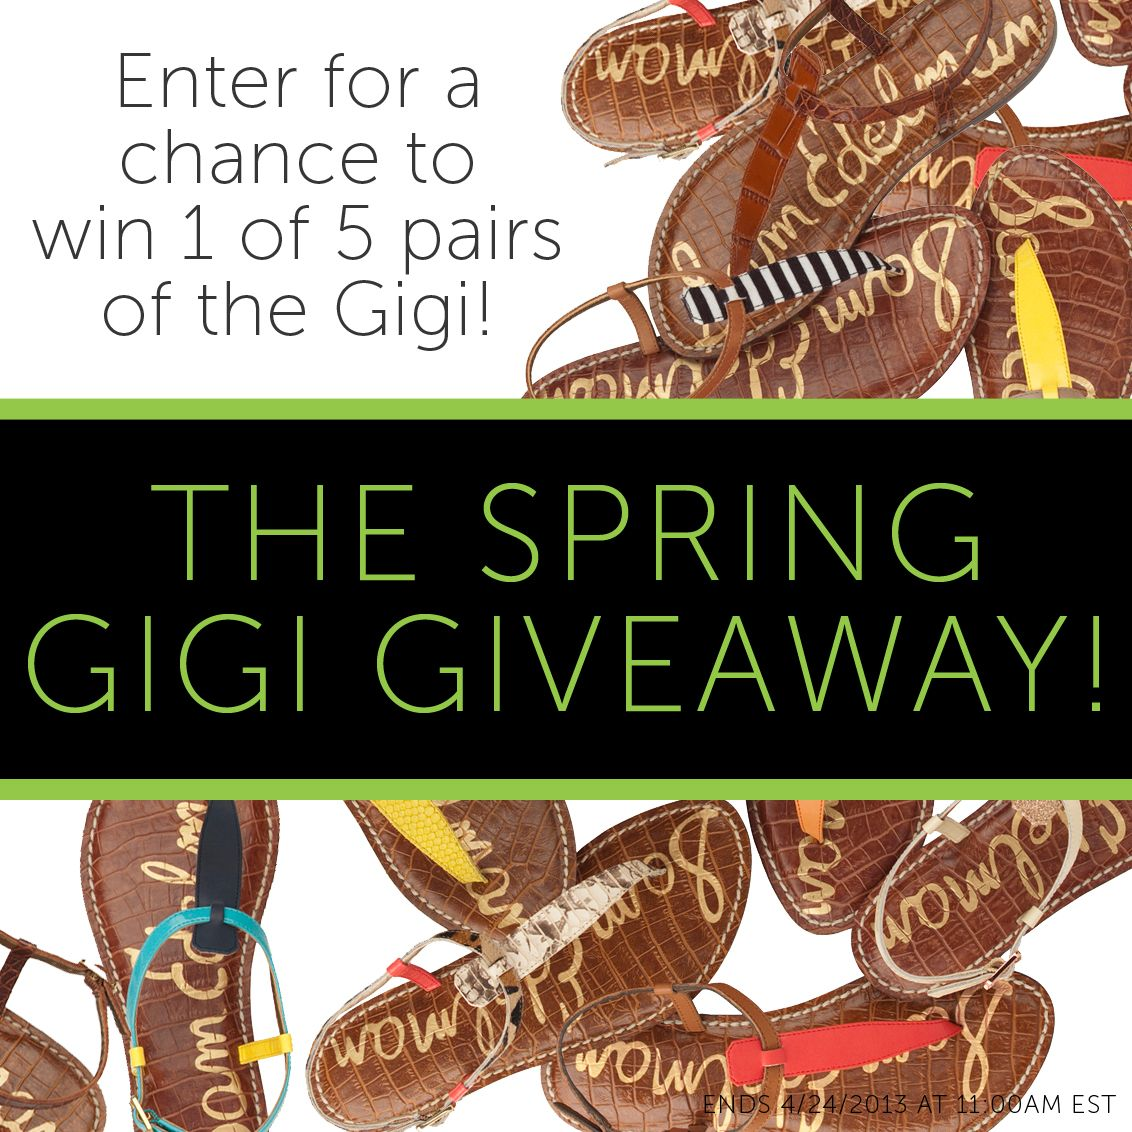 Sam Edelman SPRING GIGI GIVEAWAY! Enter here to win 1 of 5 pairs!